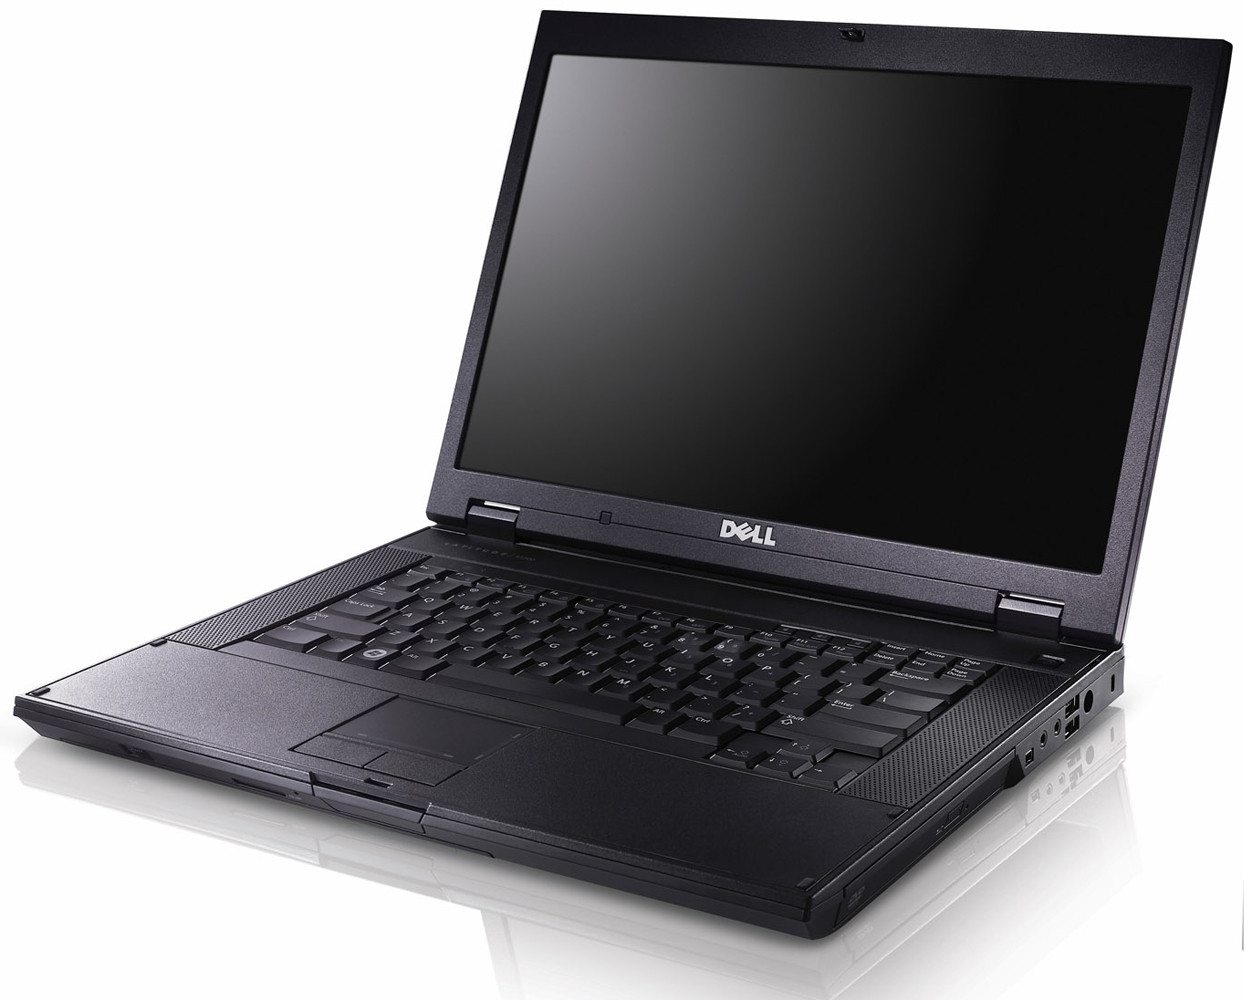 Dell Latitude E5400 ControlPoint System Manager Drivers for Windows 10